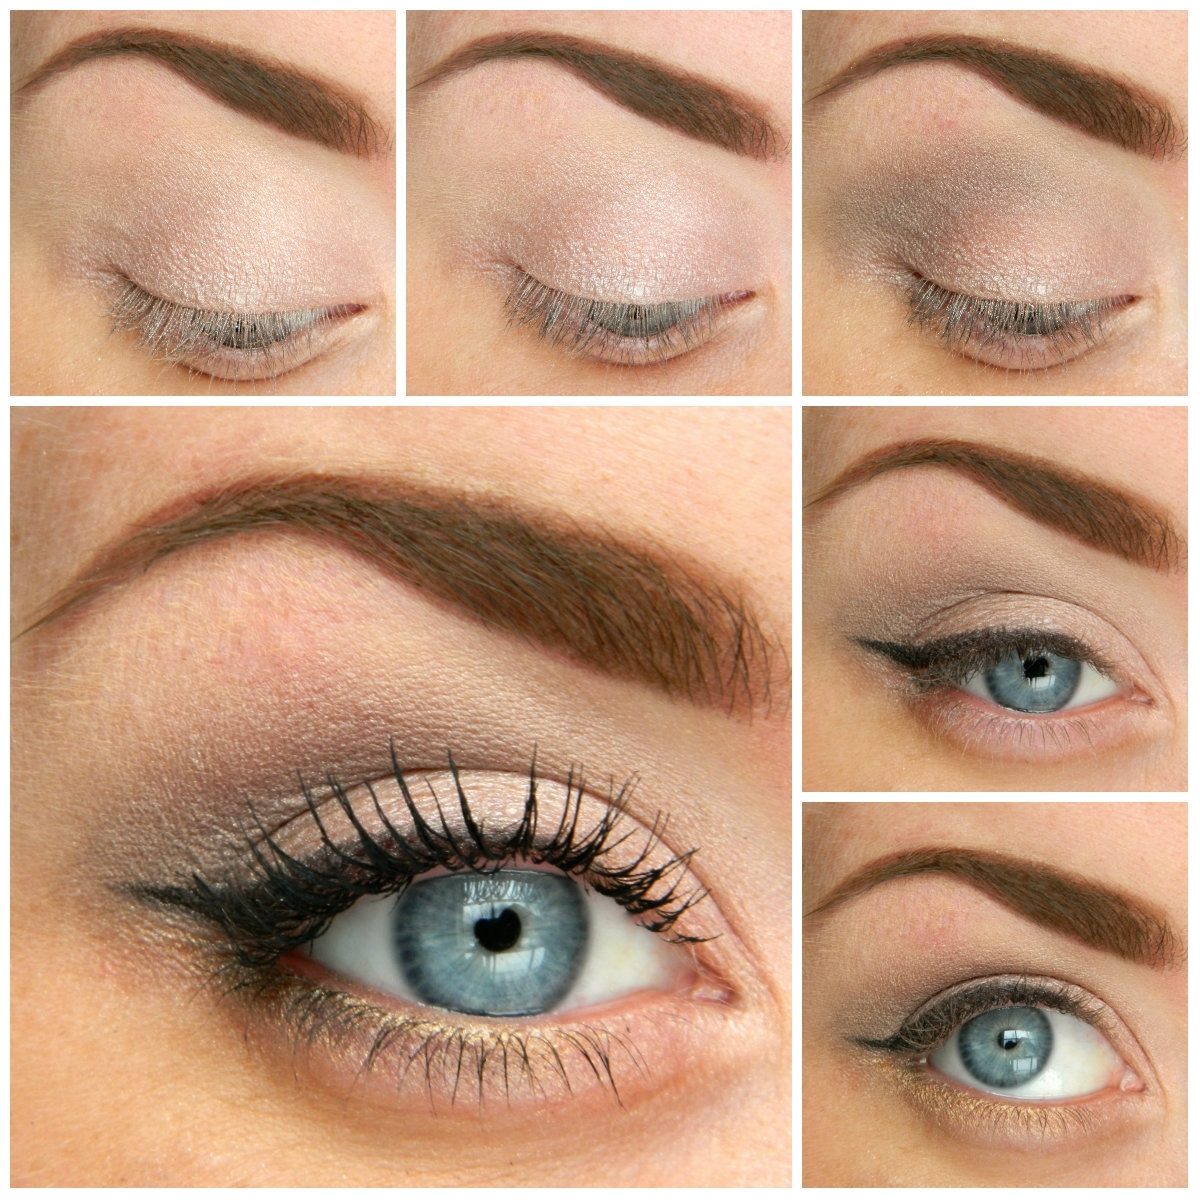 natural eye makeup for hazel eyes - page 4 - eyewear near me